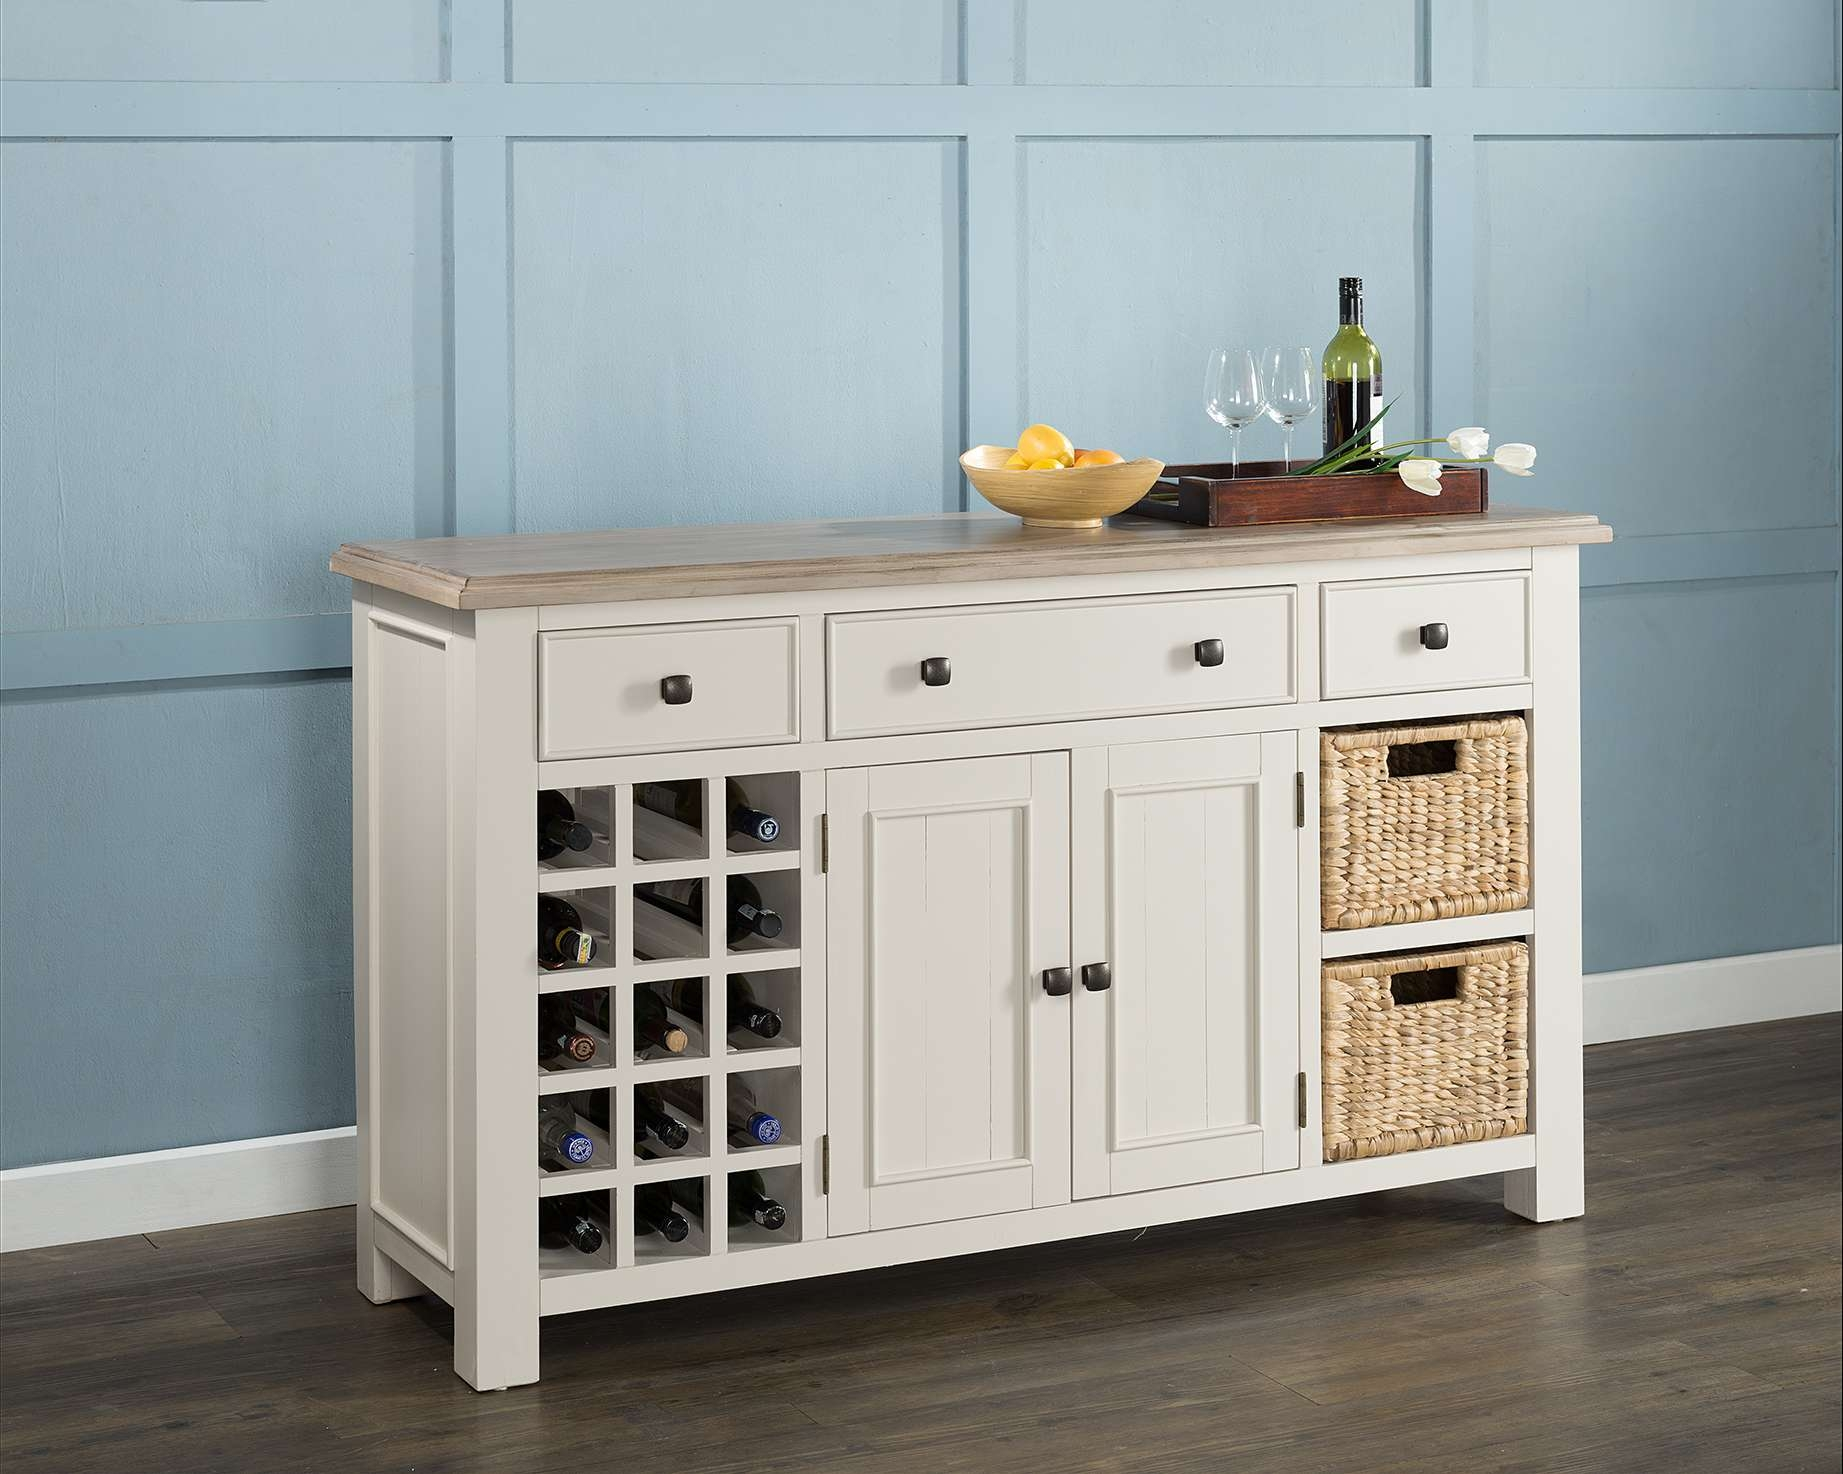 Large Sideboard With Wine Rack & Baskets (54 15) – Papaya Trading For Sideboards With Wine Rack (View 7 of 20)